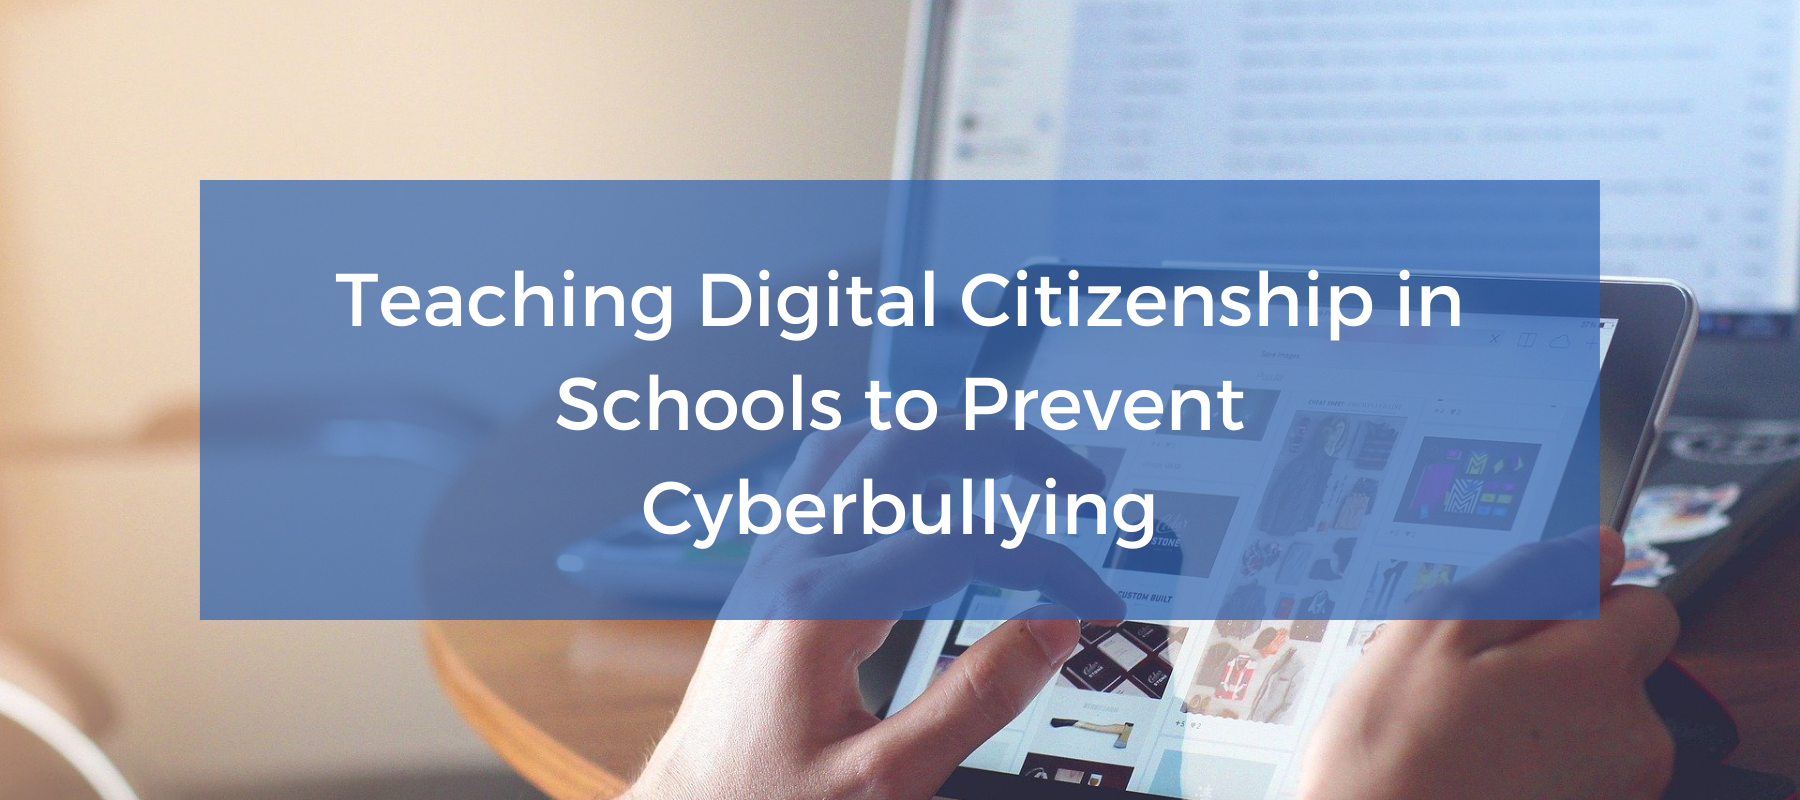 Featured blog image of teaching digital citizenship to prevent cyberbullying in schools.